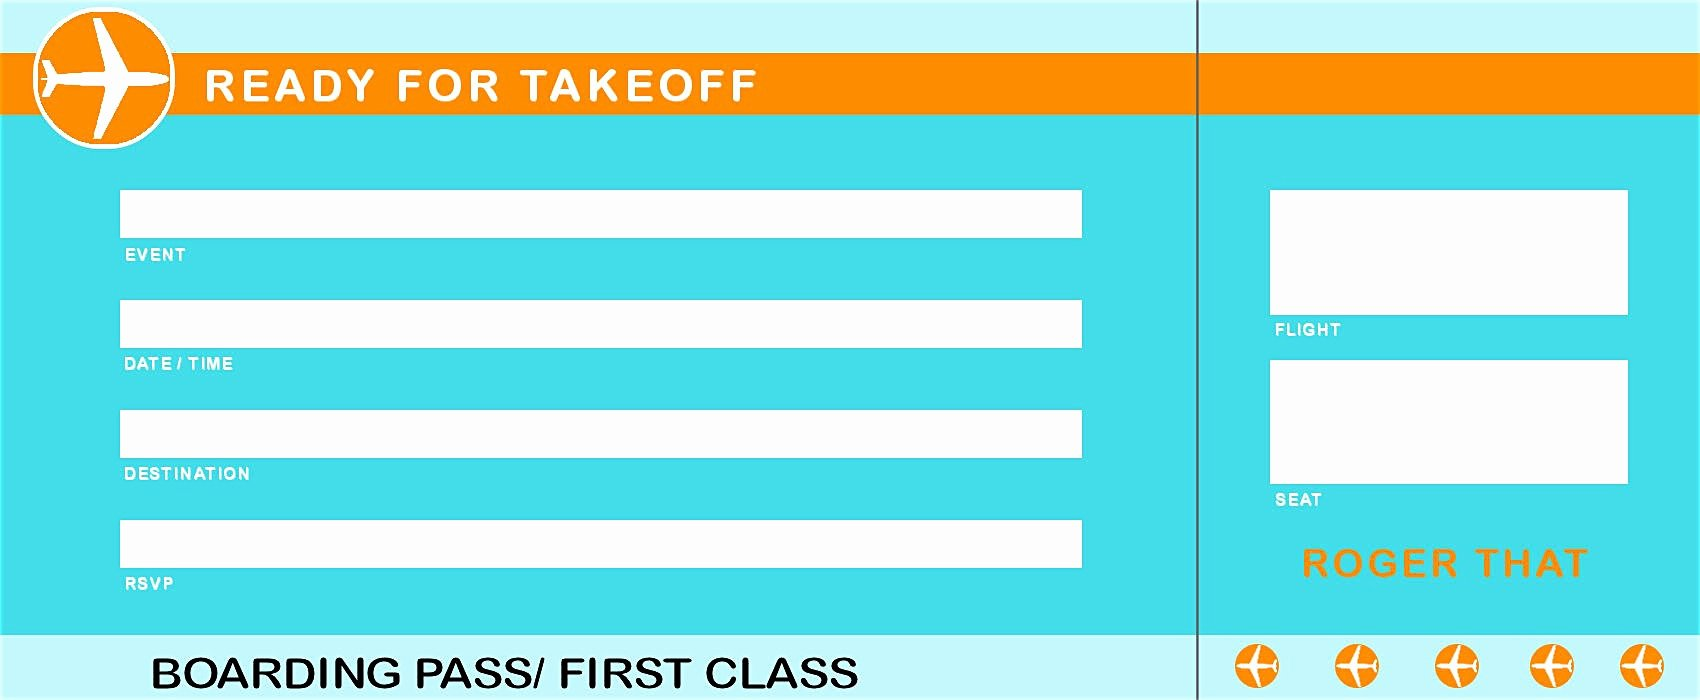 Plane Ticket Template Word Beautiful Airline Ticket Template Word Example Mughals